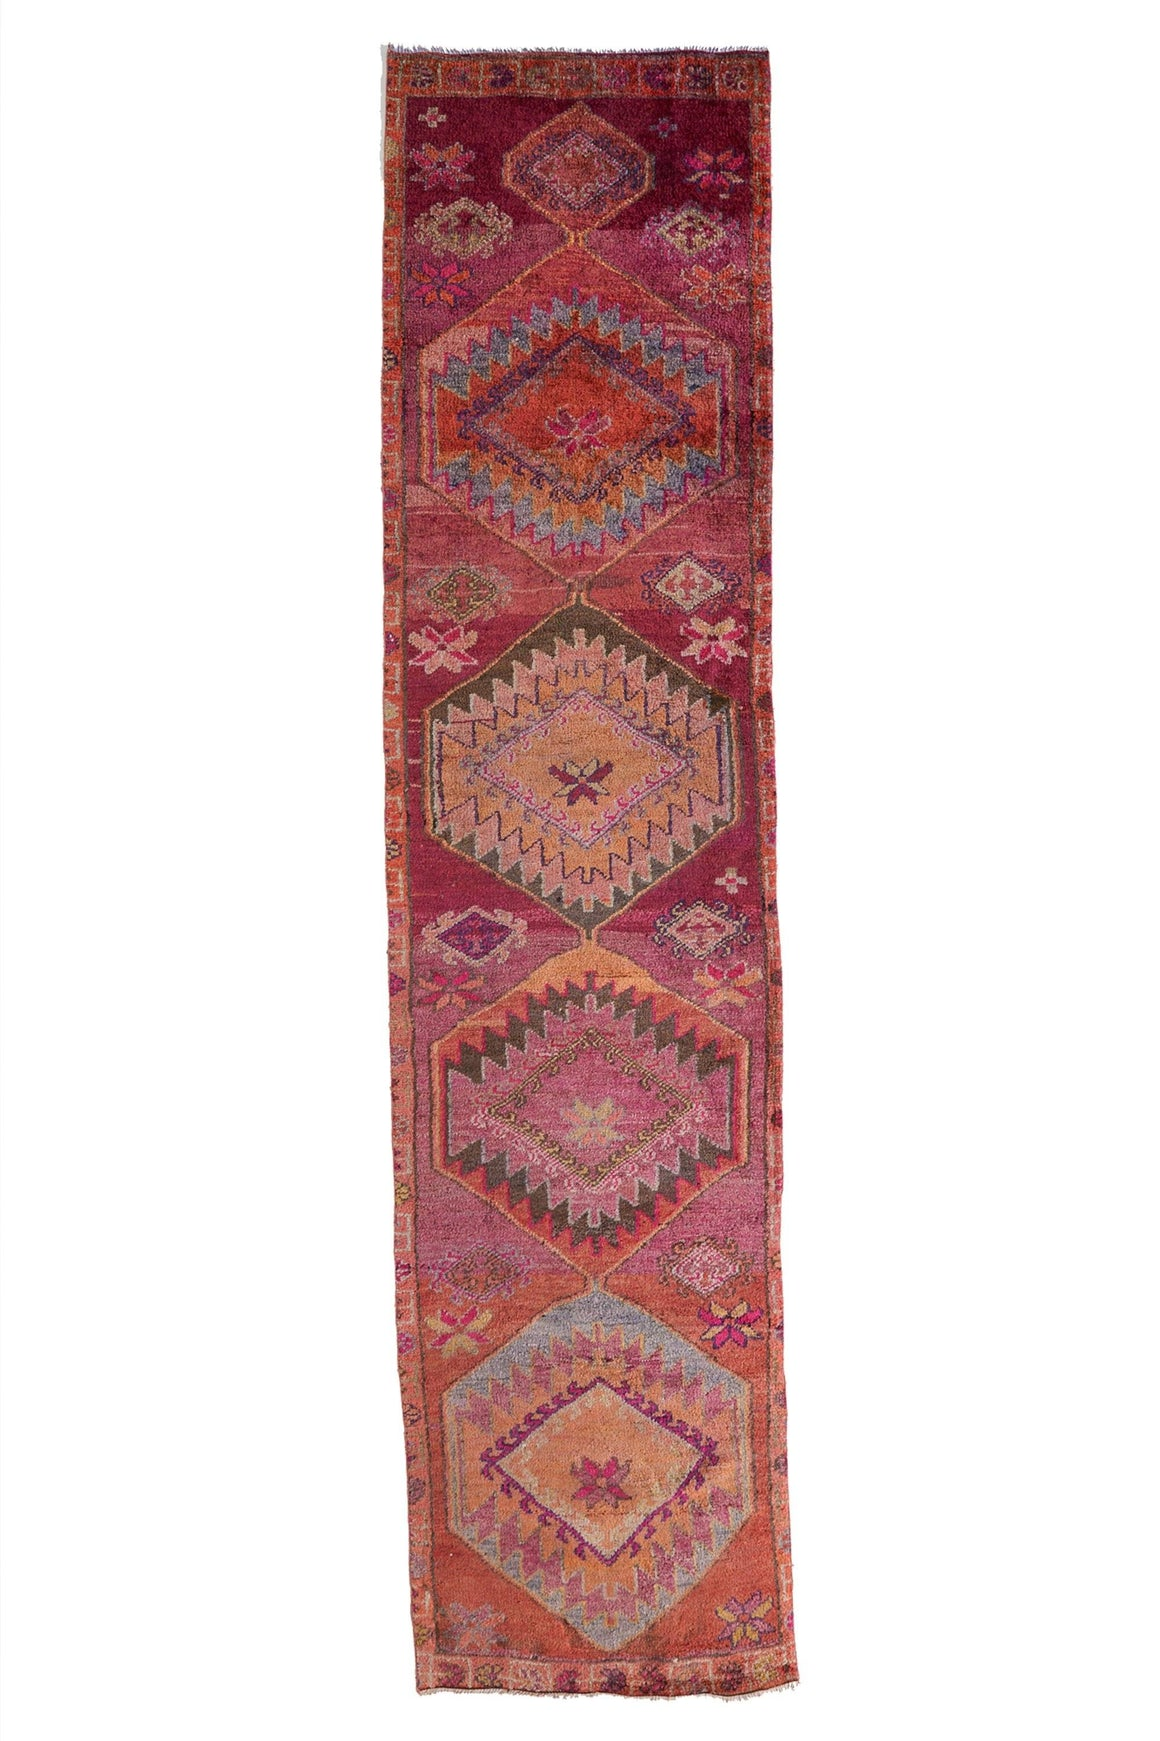 'Delight' Turkish Vintage Runner Rug - 2'11'' x 12'3'' - Canary Lane - Curated Textiles